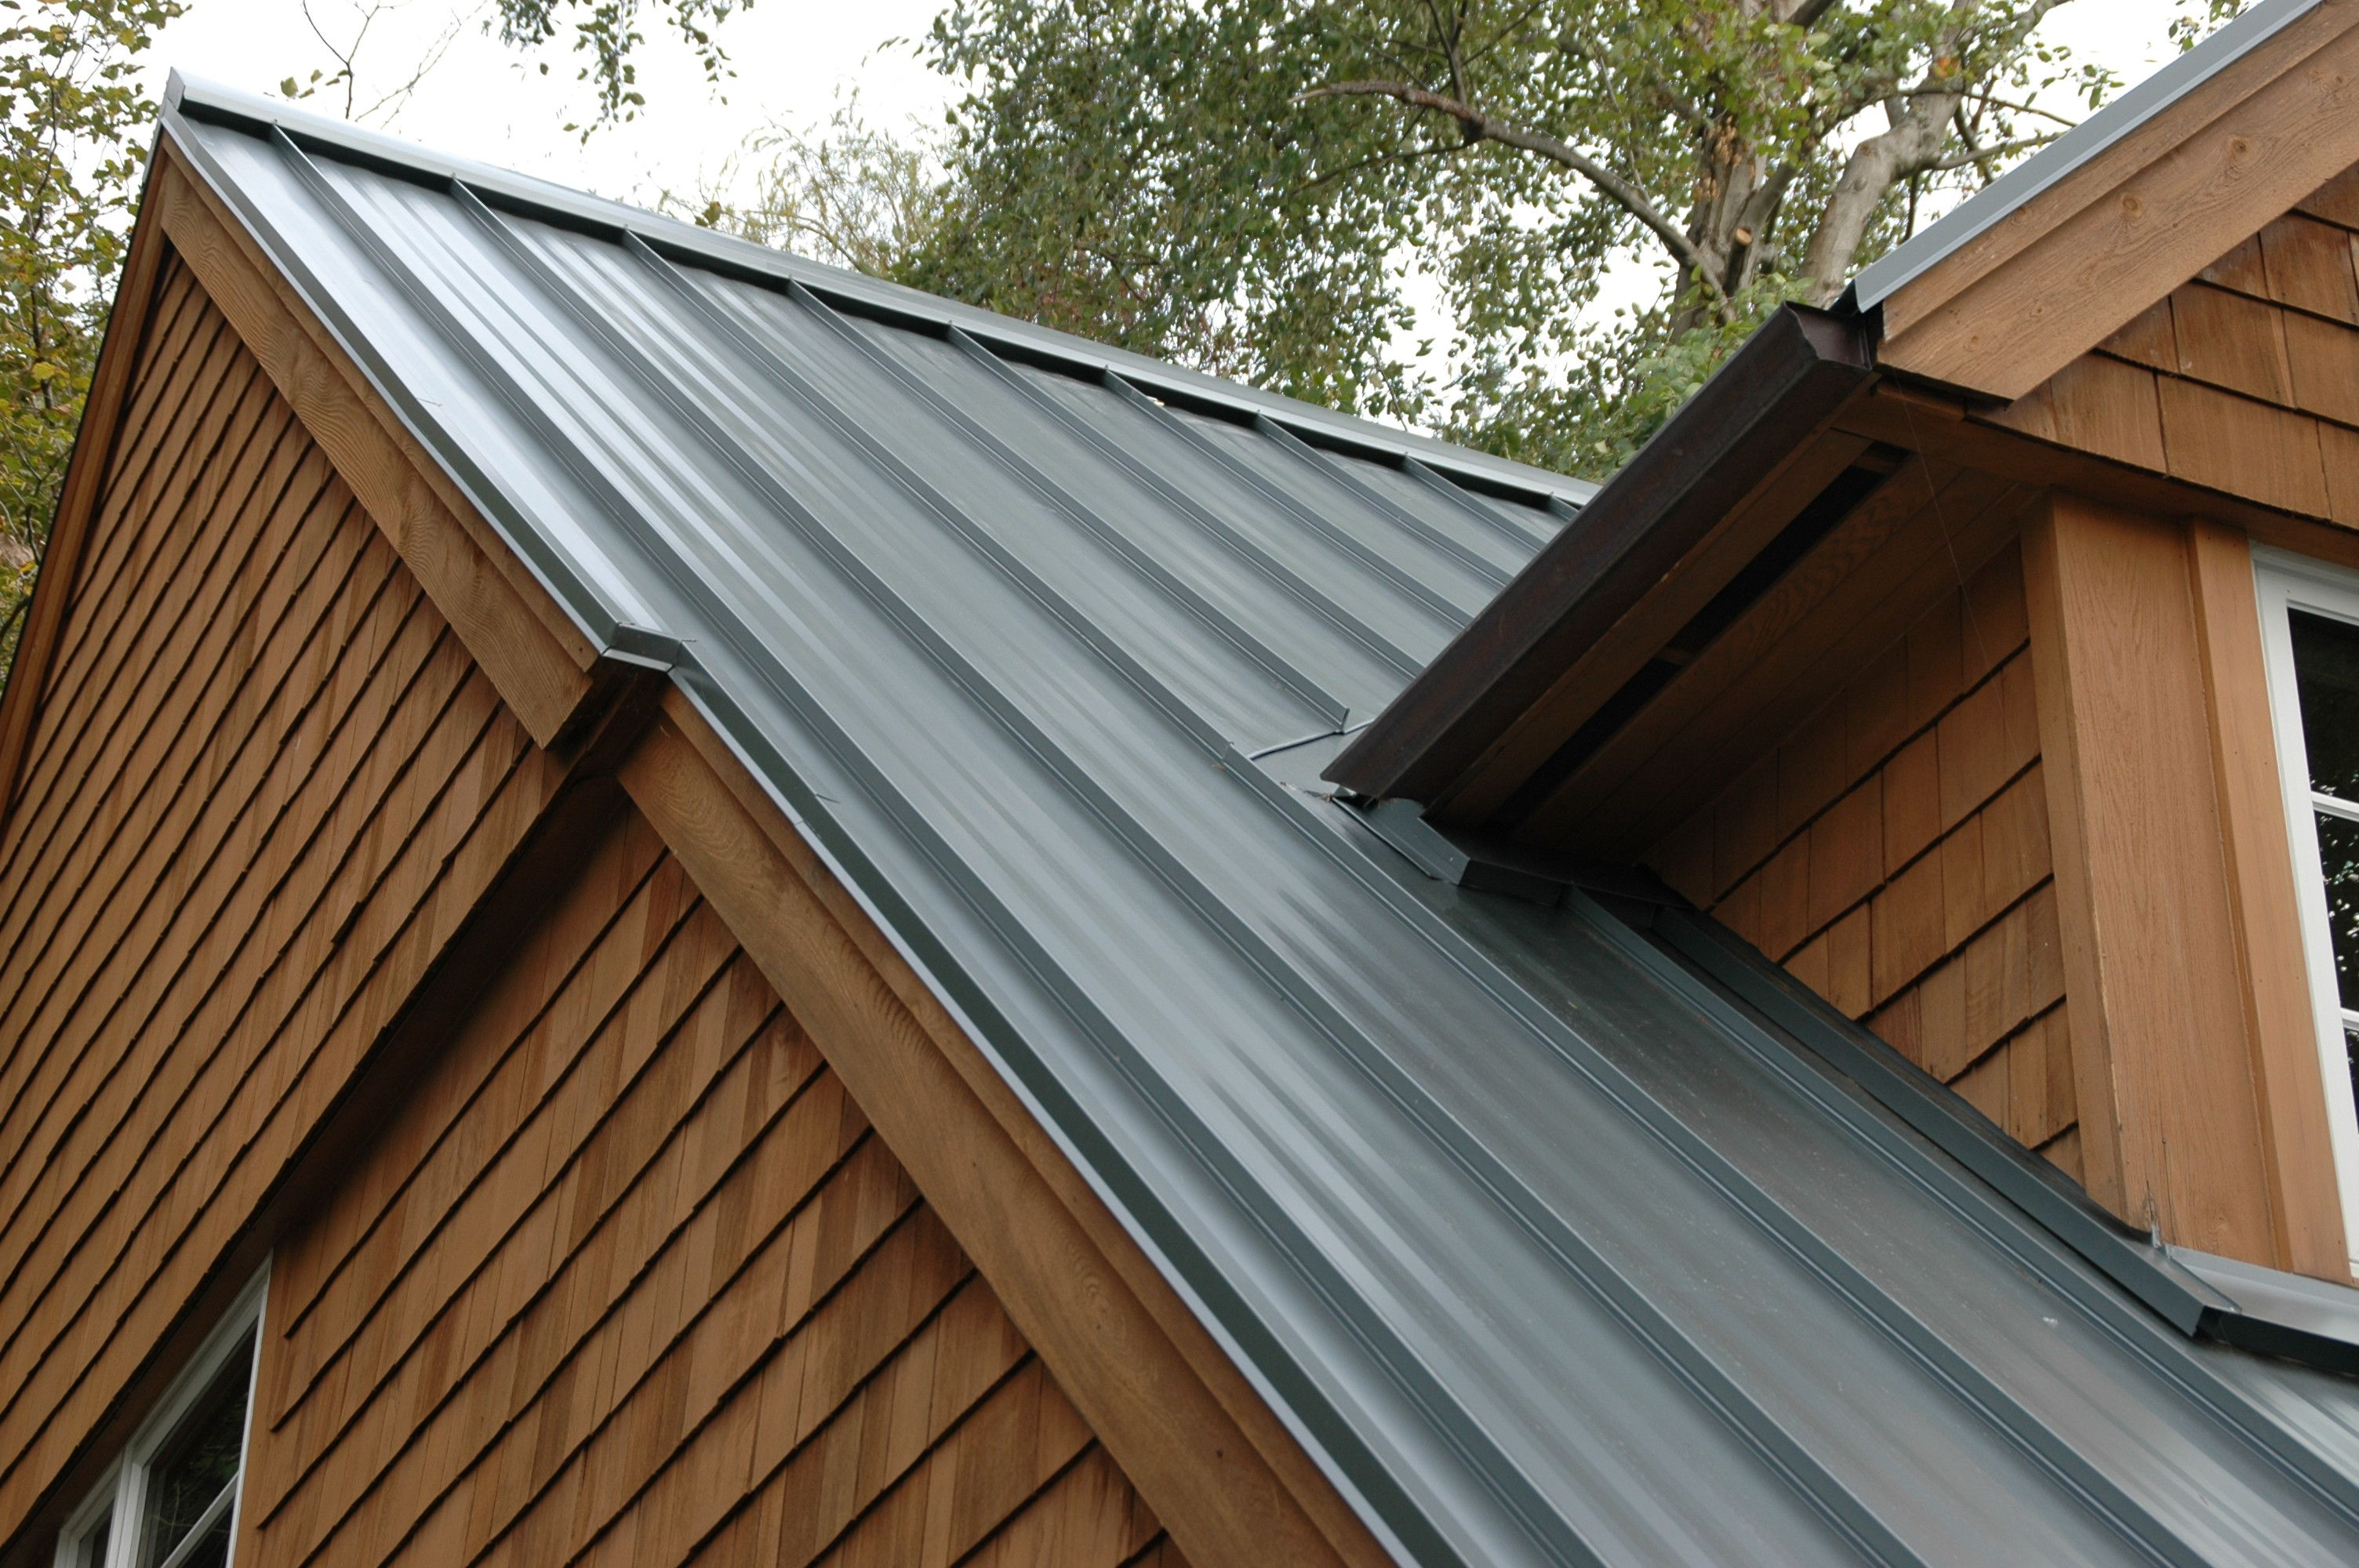 Pin On Metal Roofing Ideas